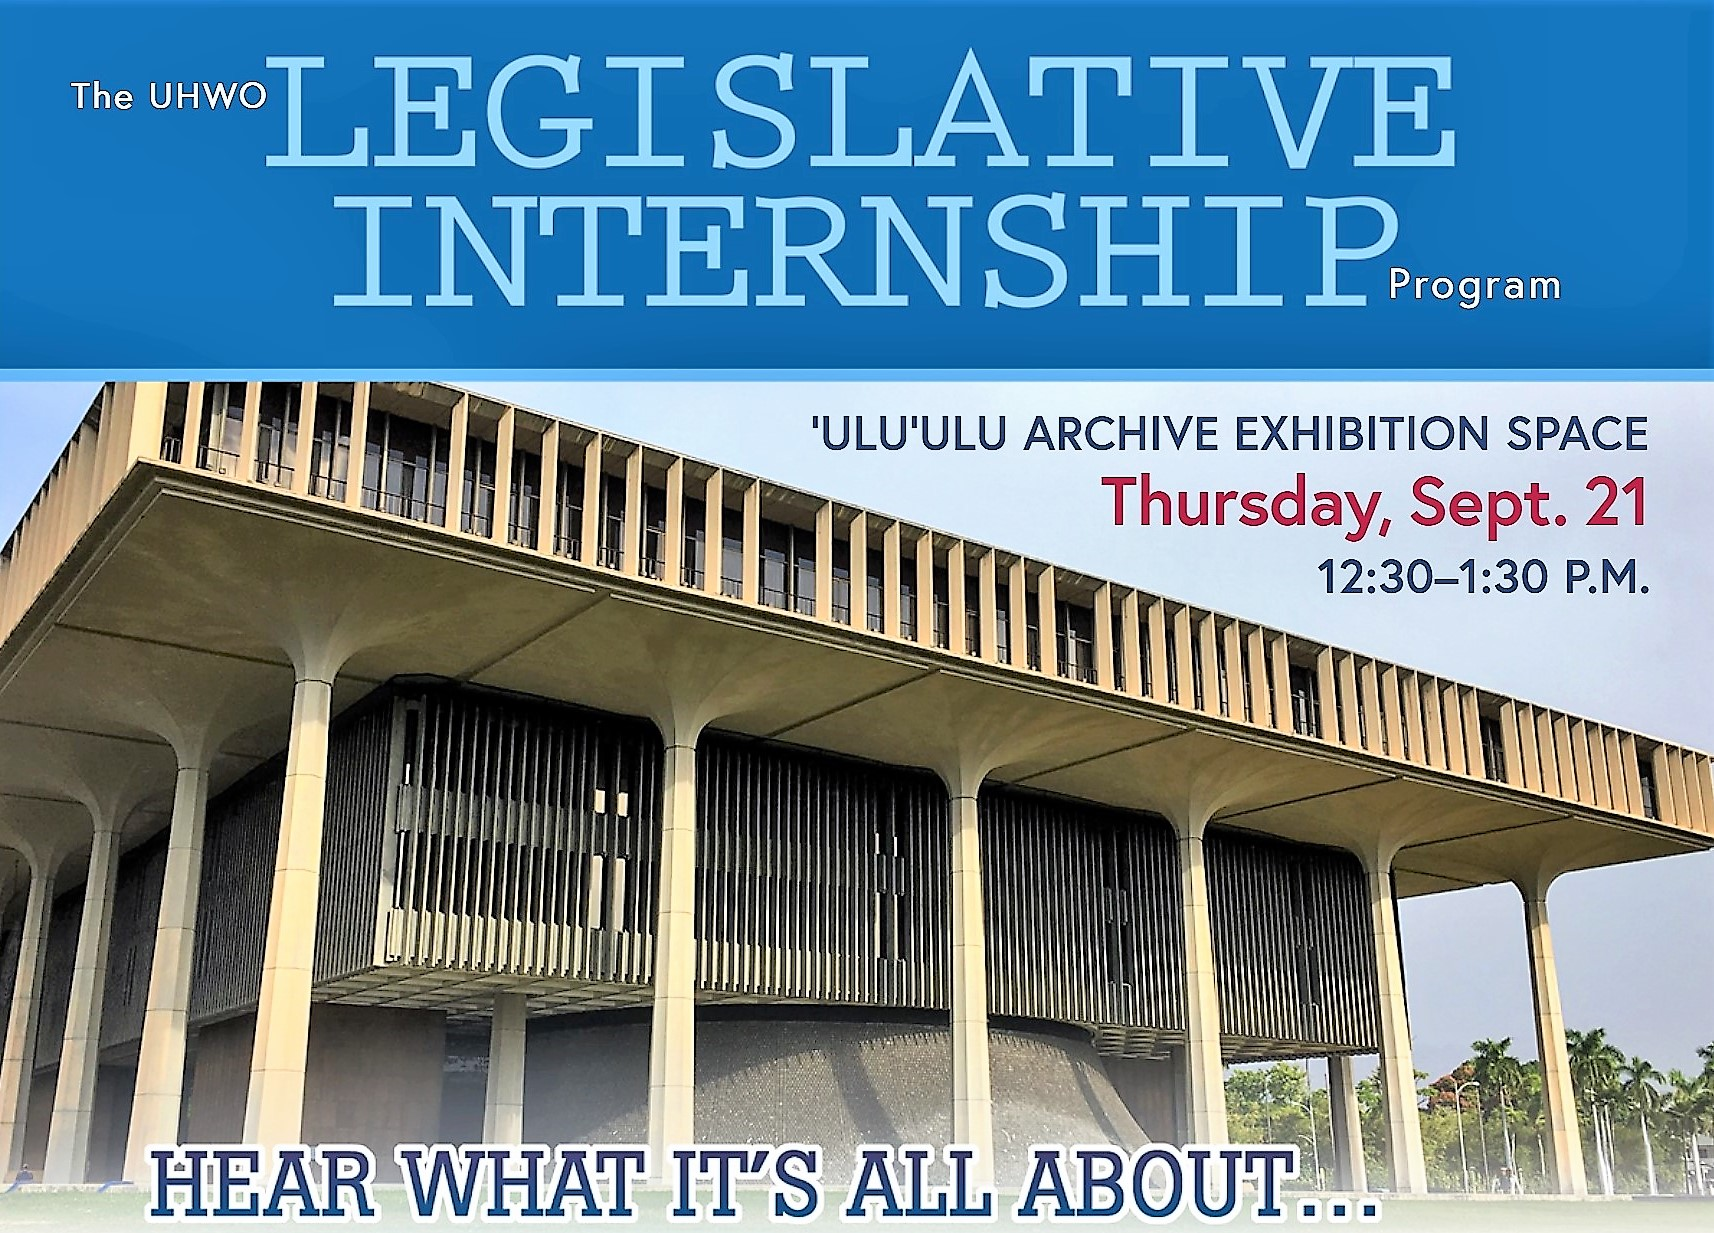 Hear what the UHWO Legislative Internship is all about 12:30-1:30 p.m., Sept. 21, ʻUluʻulu exhibition space